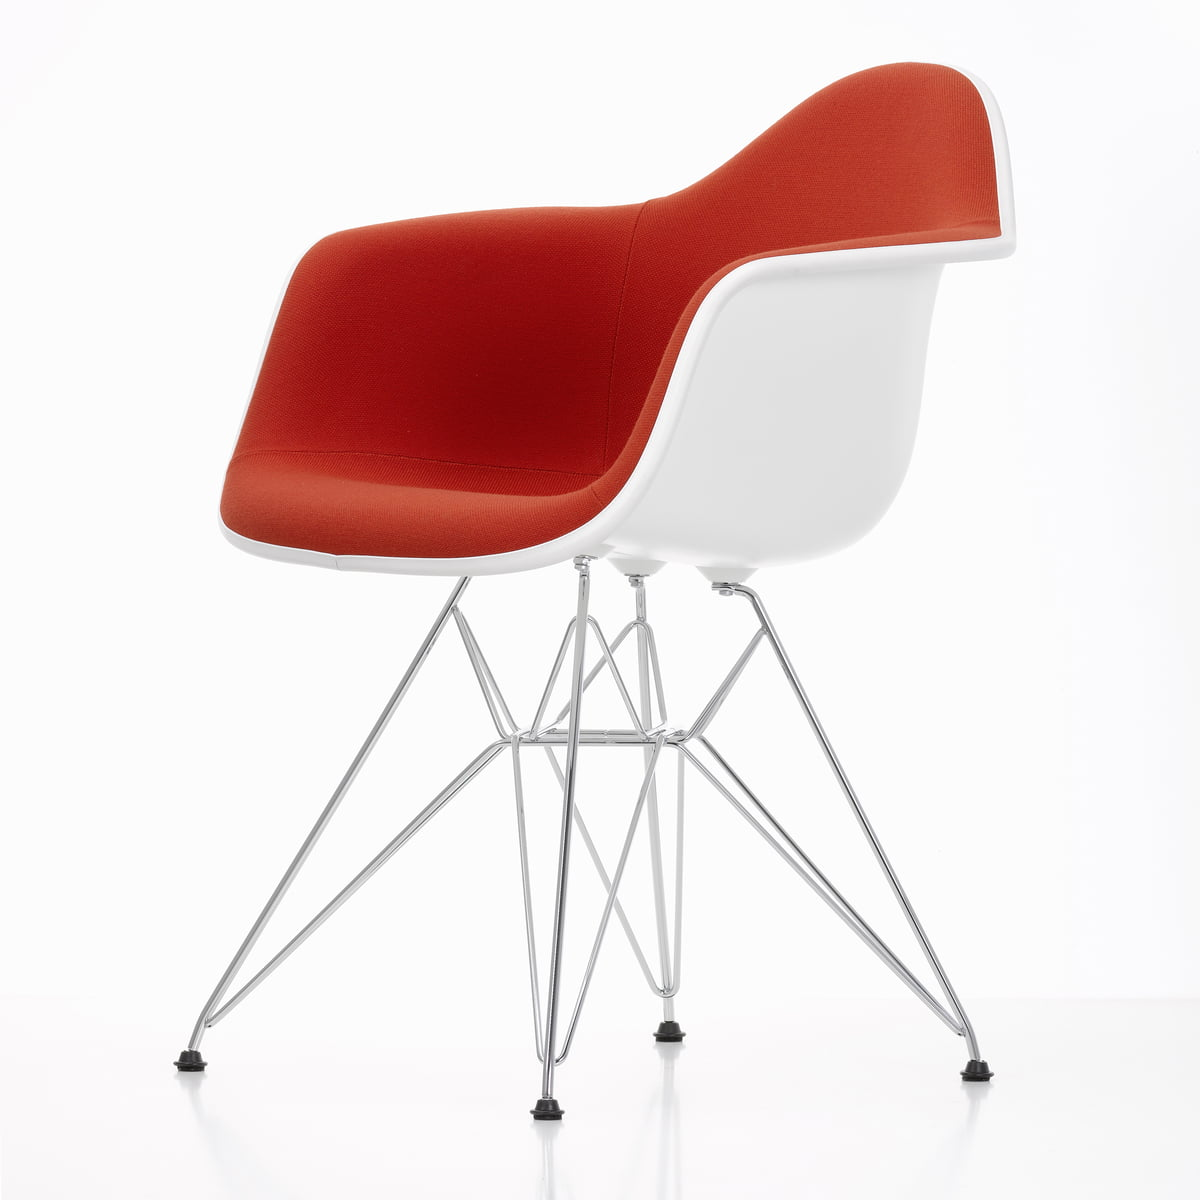 Eames Plastic Armchair Vitra Eames Plastic Armchair Dar Upholstered